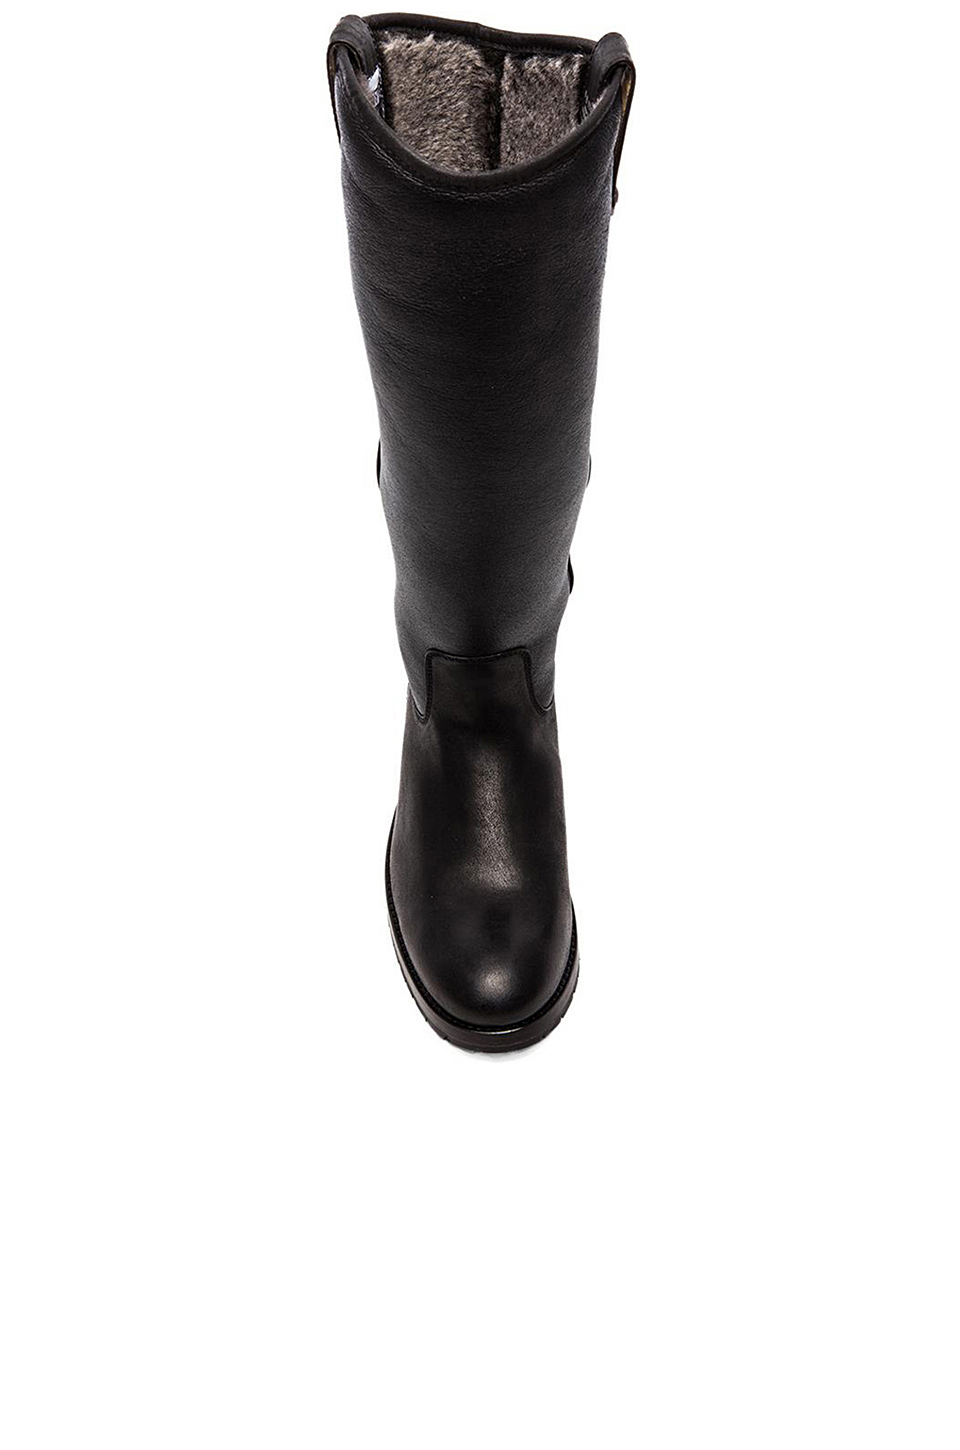 Frye Melissa Button Boot with Sheep Shearling in Black